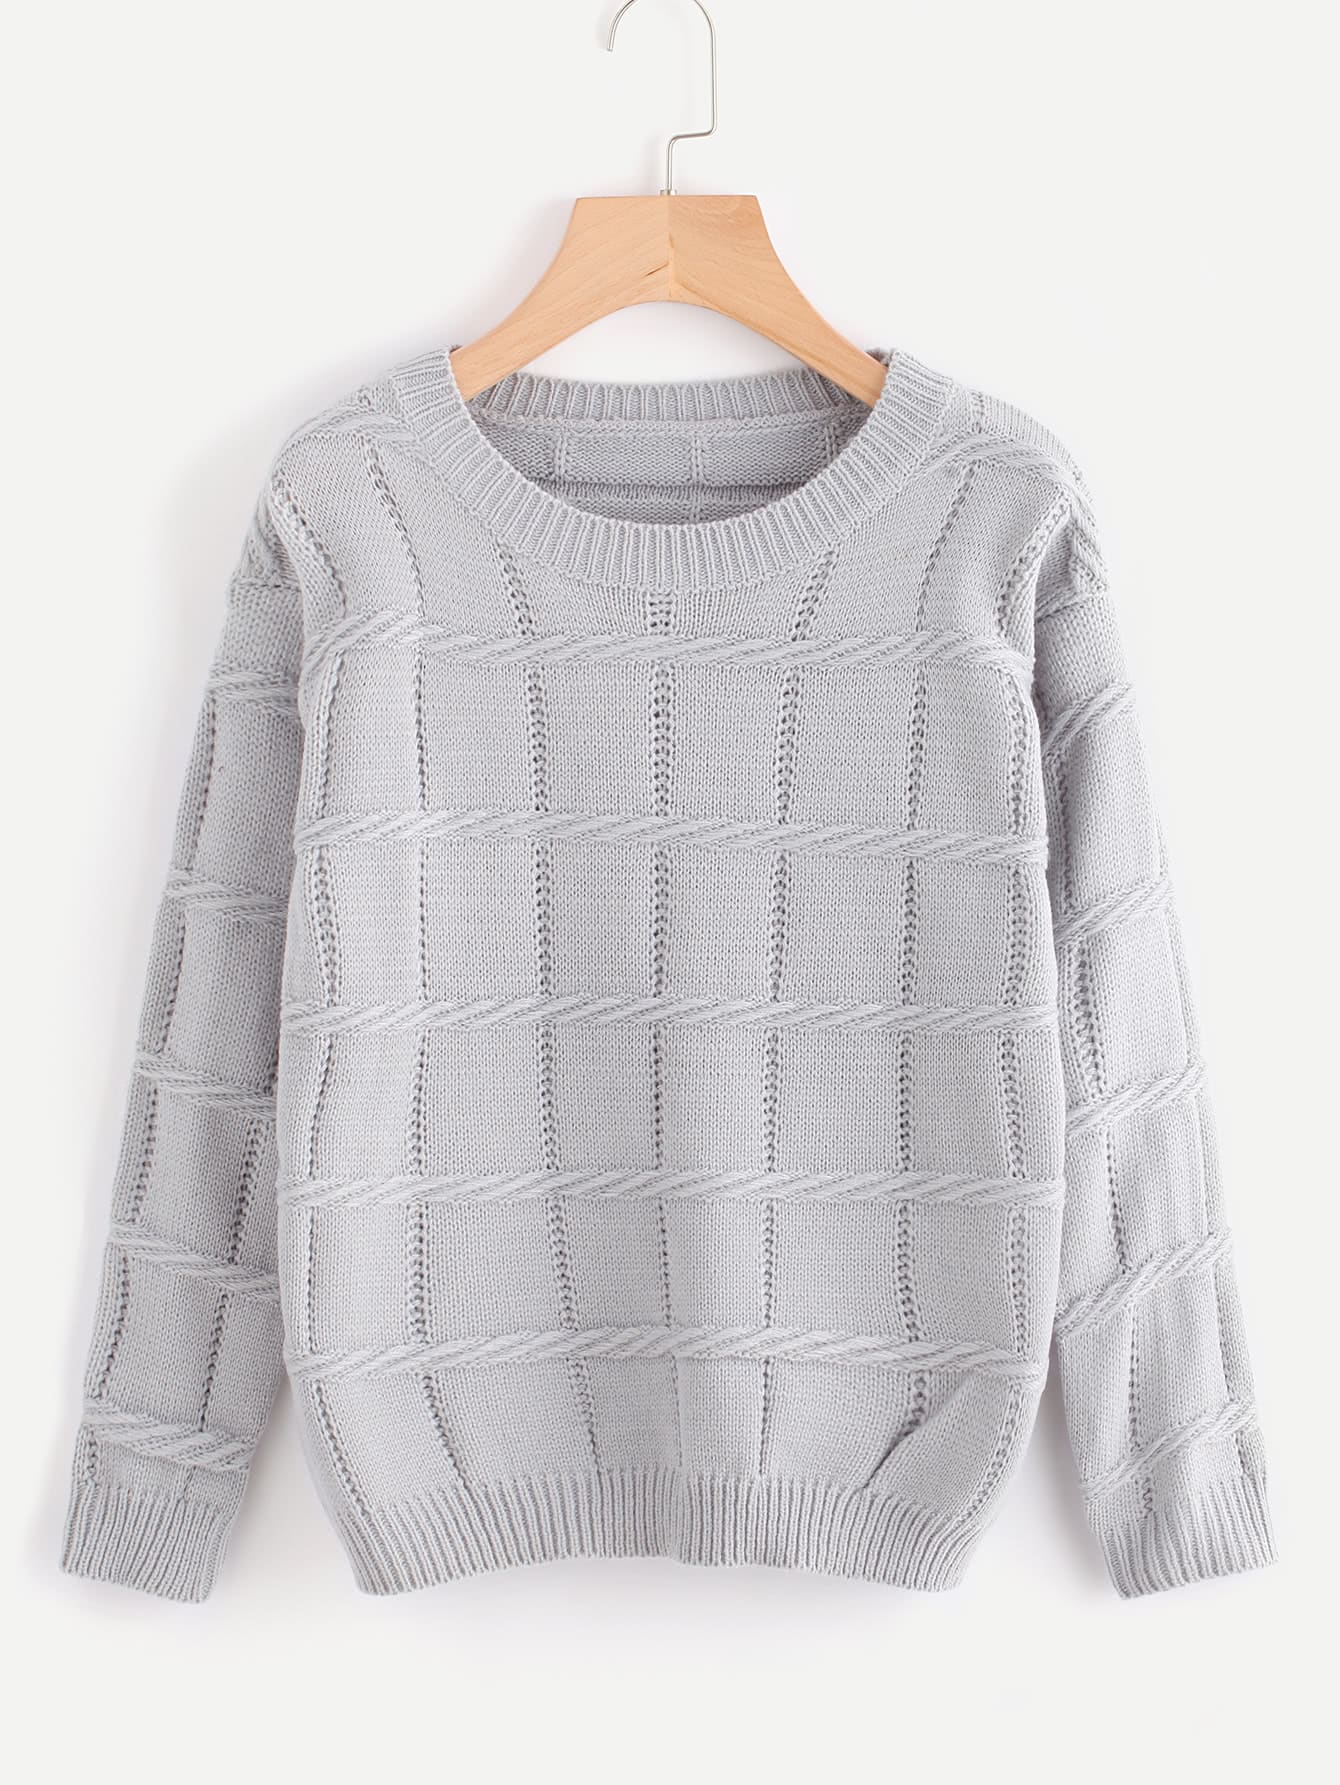 Hollow Out Textured Knit Sweater sweater170919110